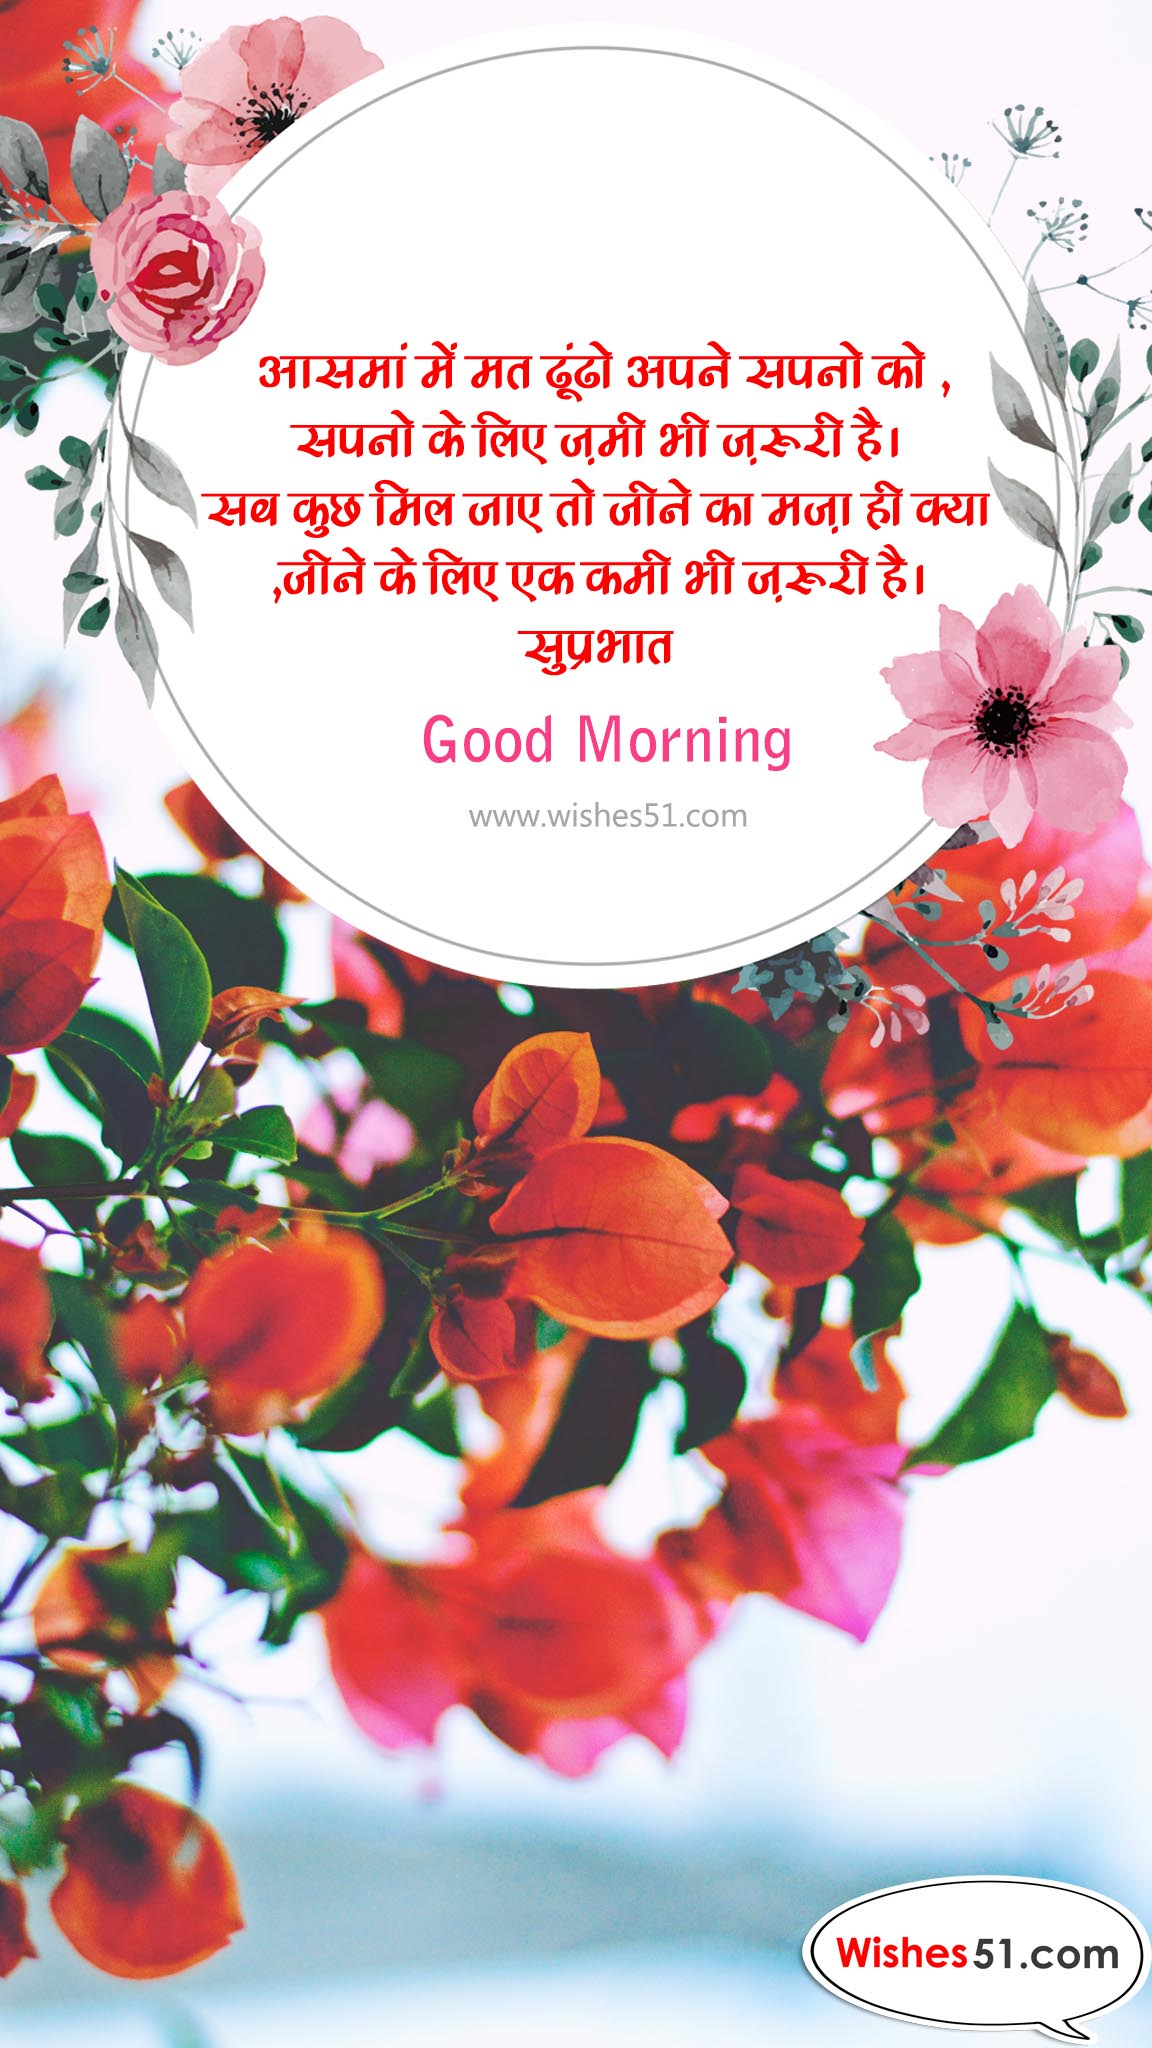 Good morning i love u images download